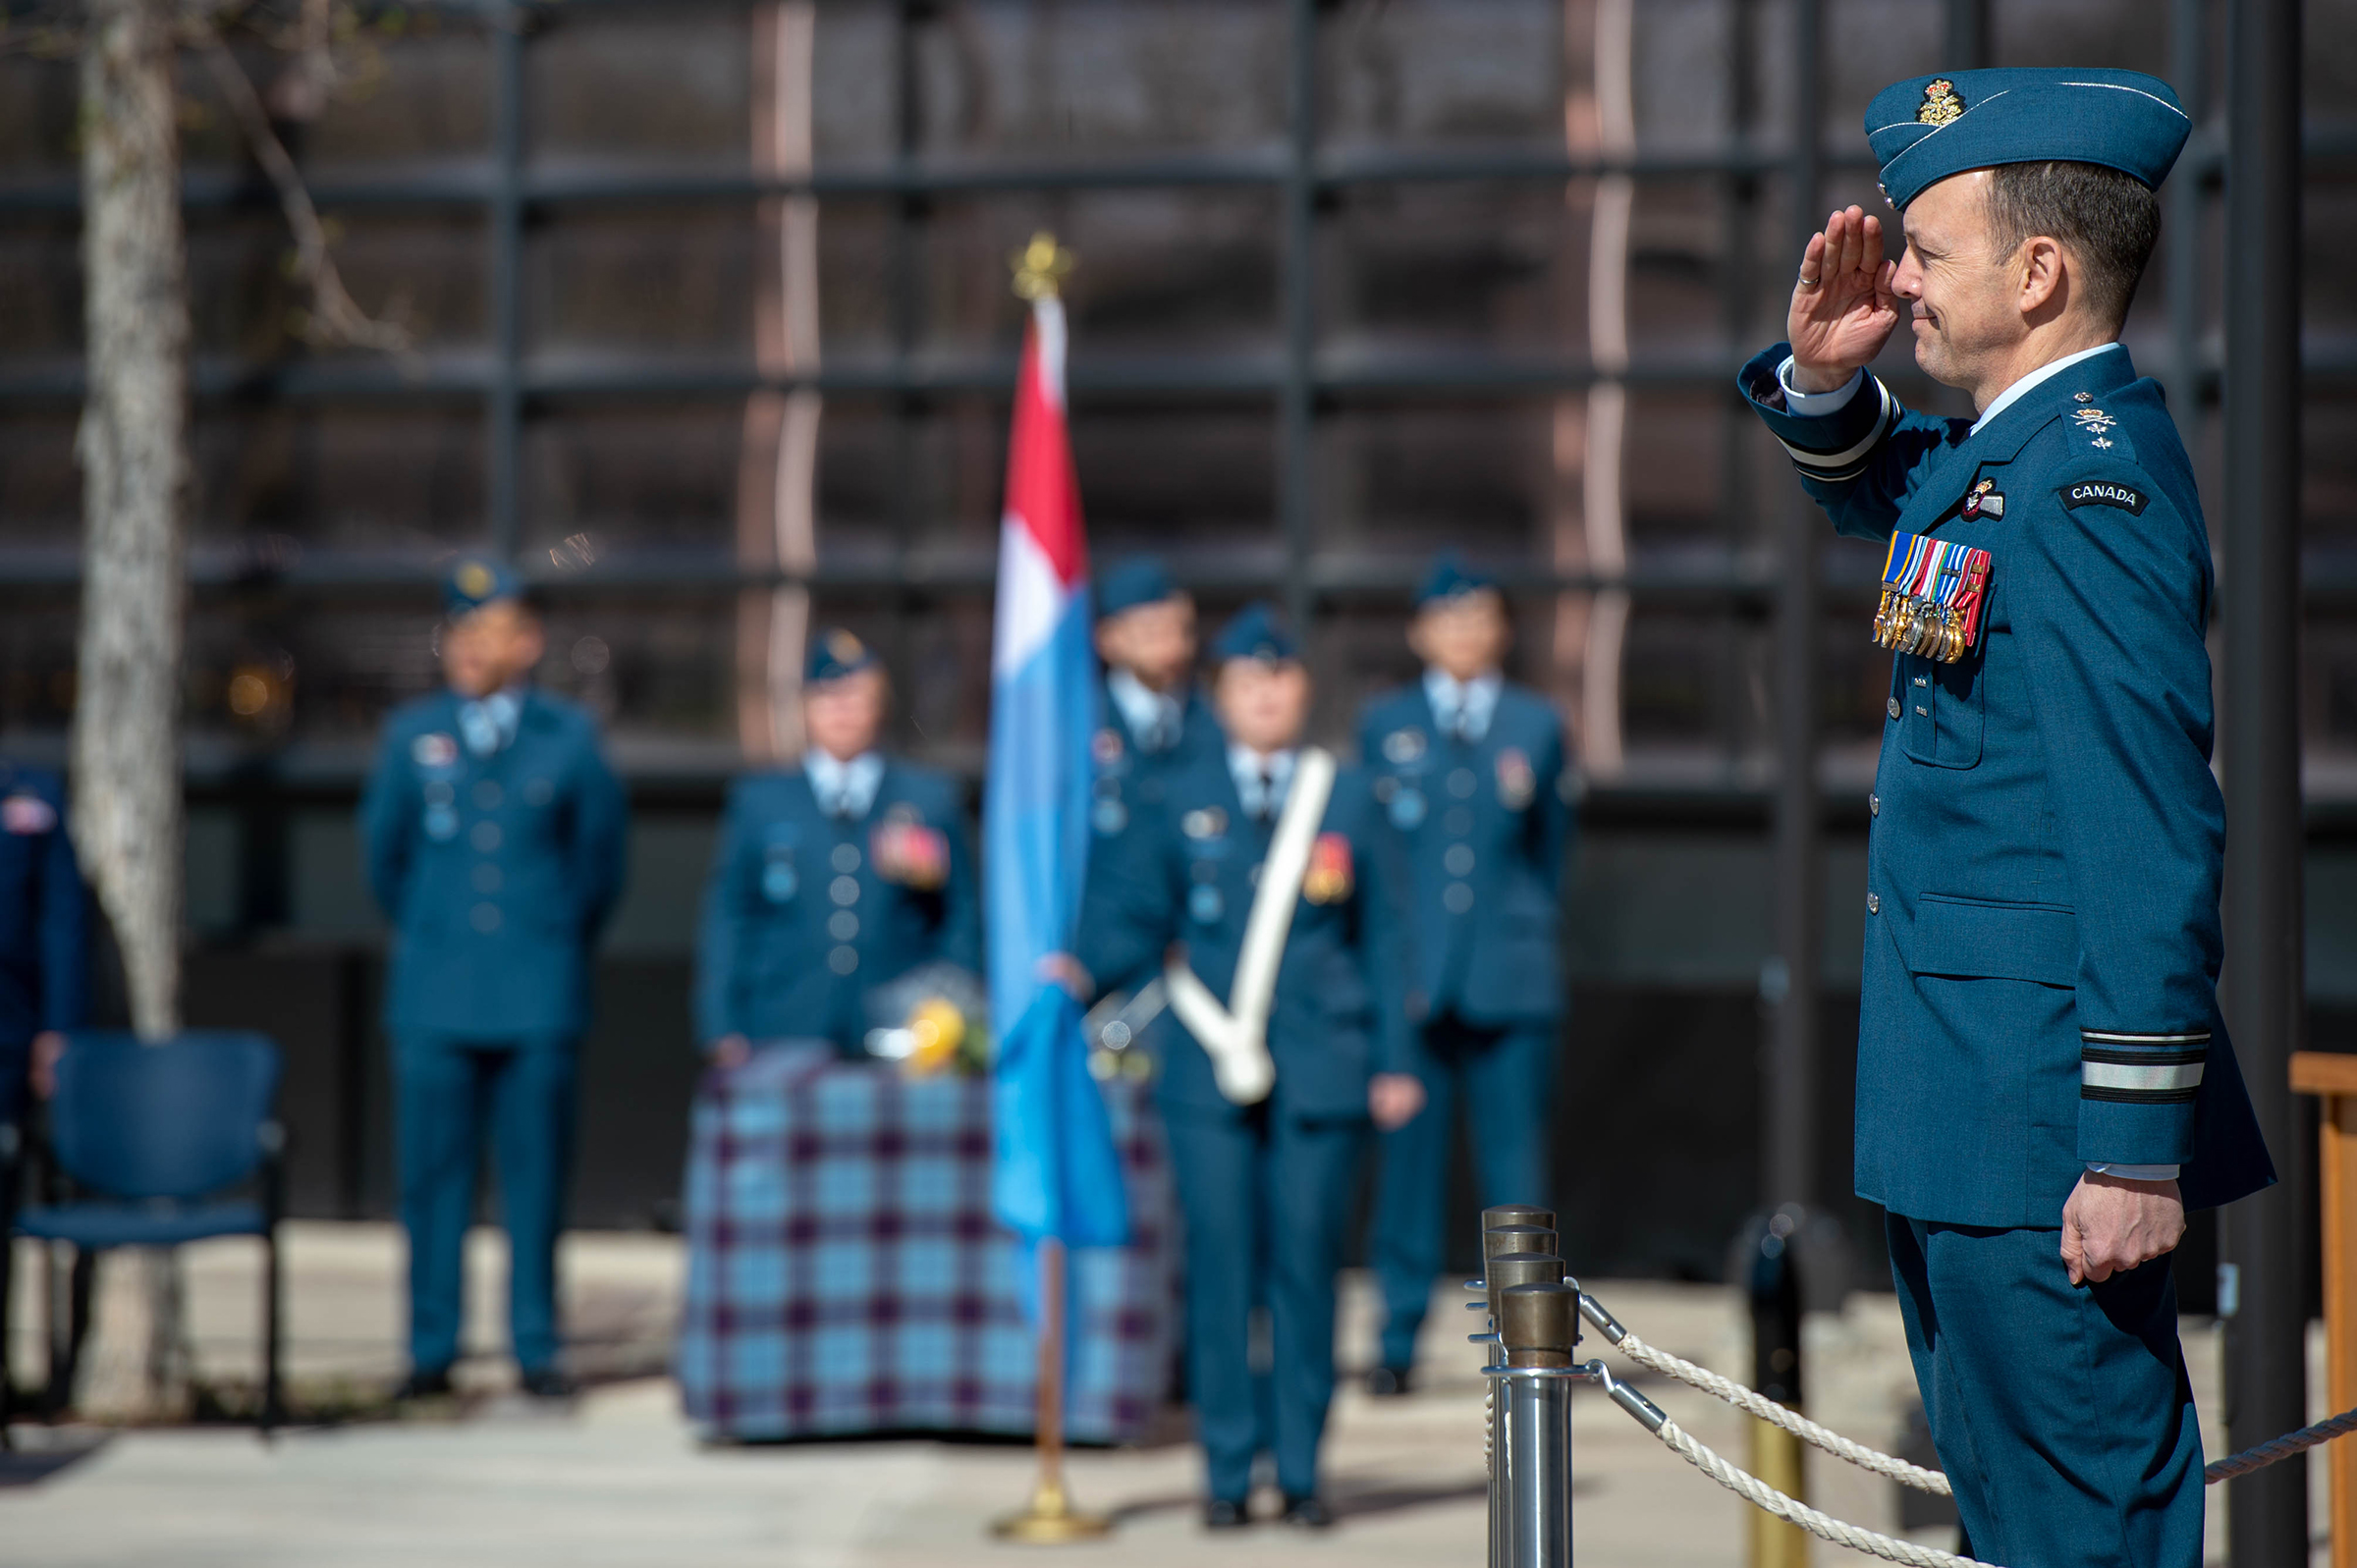 A man wearing a military uniform stands on a platform and salutes.